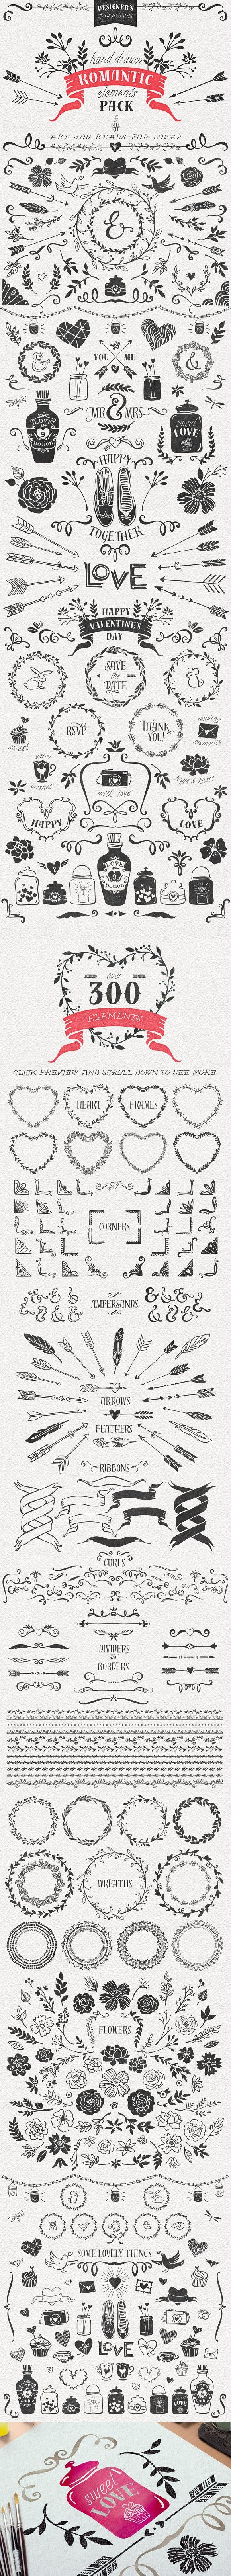 Hand Drawn Romantic Decoration Pack. Wedding Fonts